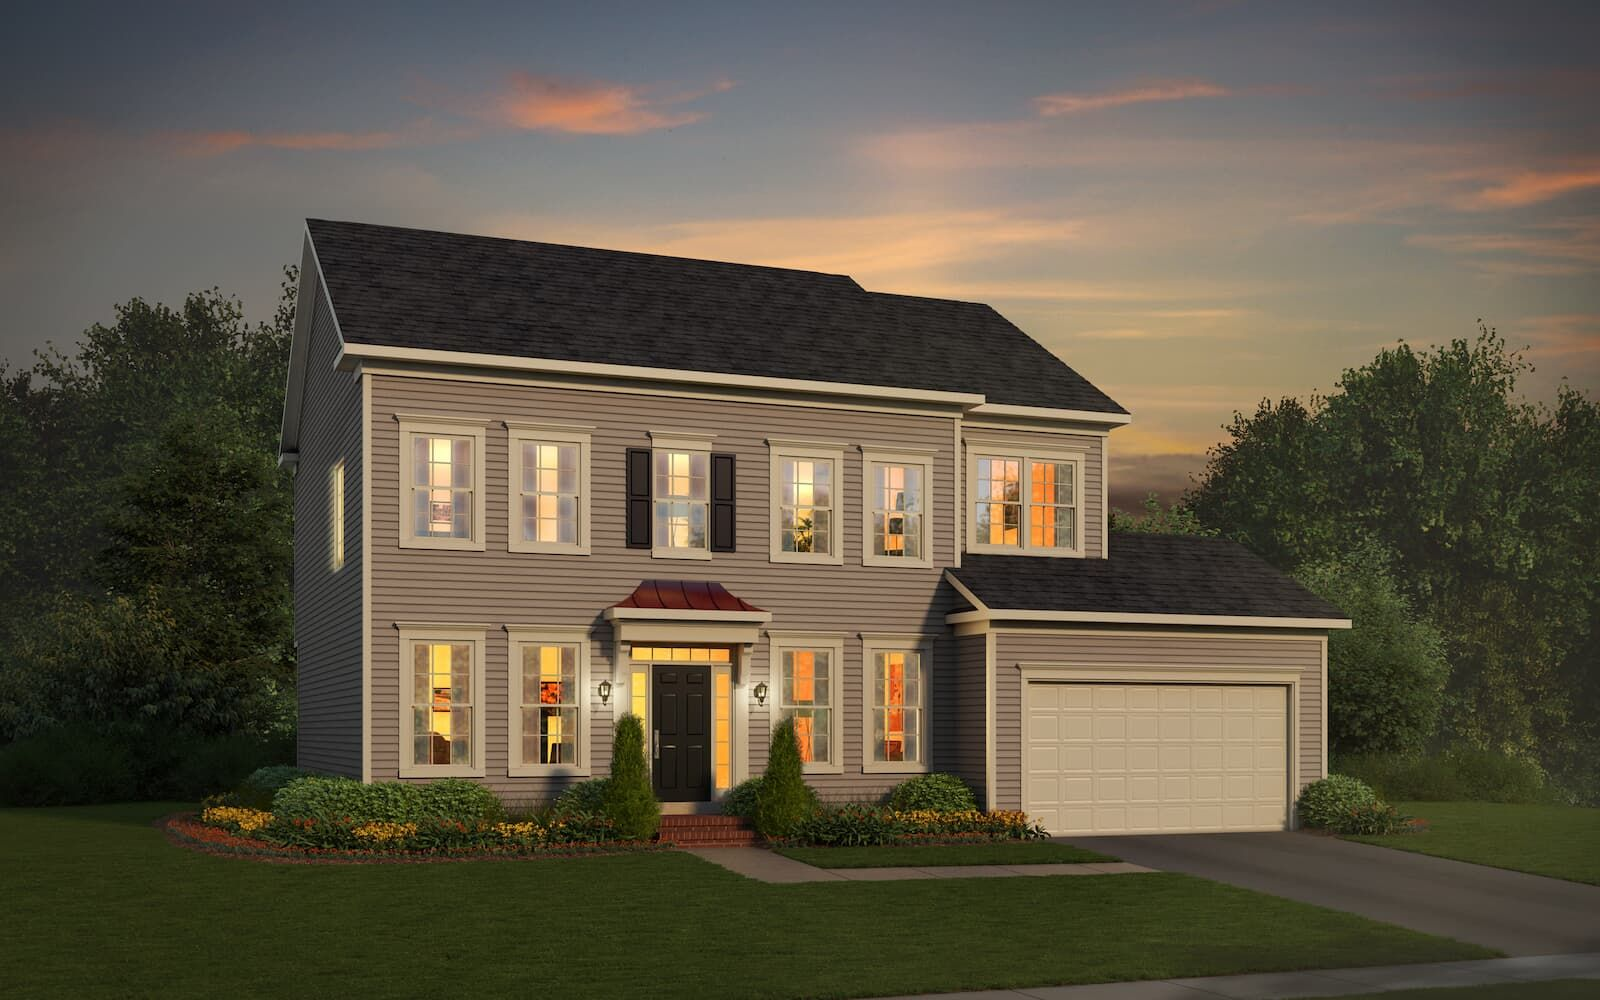 Exterior:Elevation 1 of the Brighton a home design by Brookfield Residential at The Bluffs at Sleeter Lake